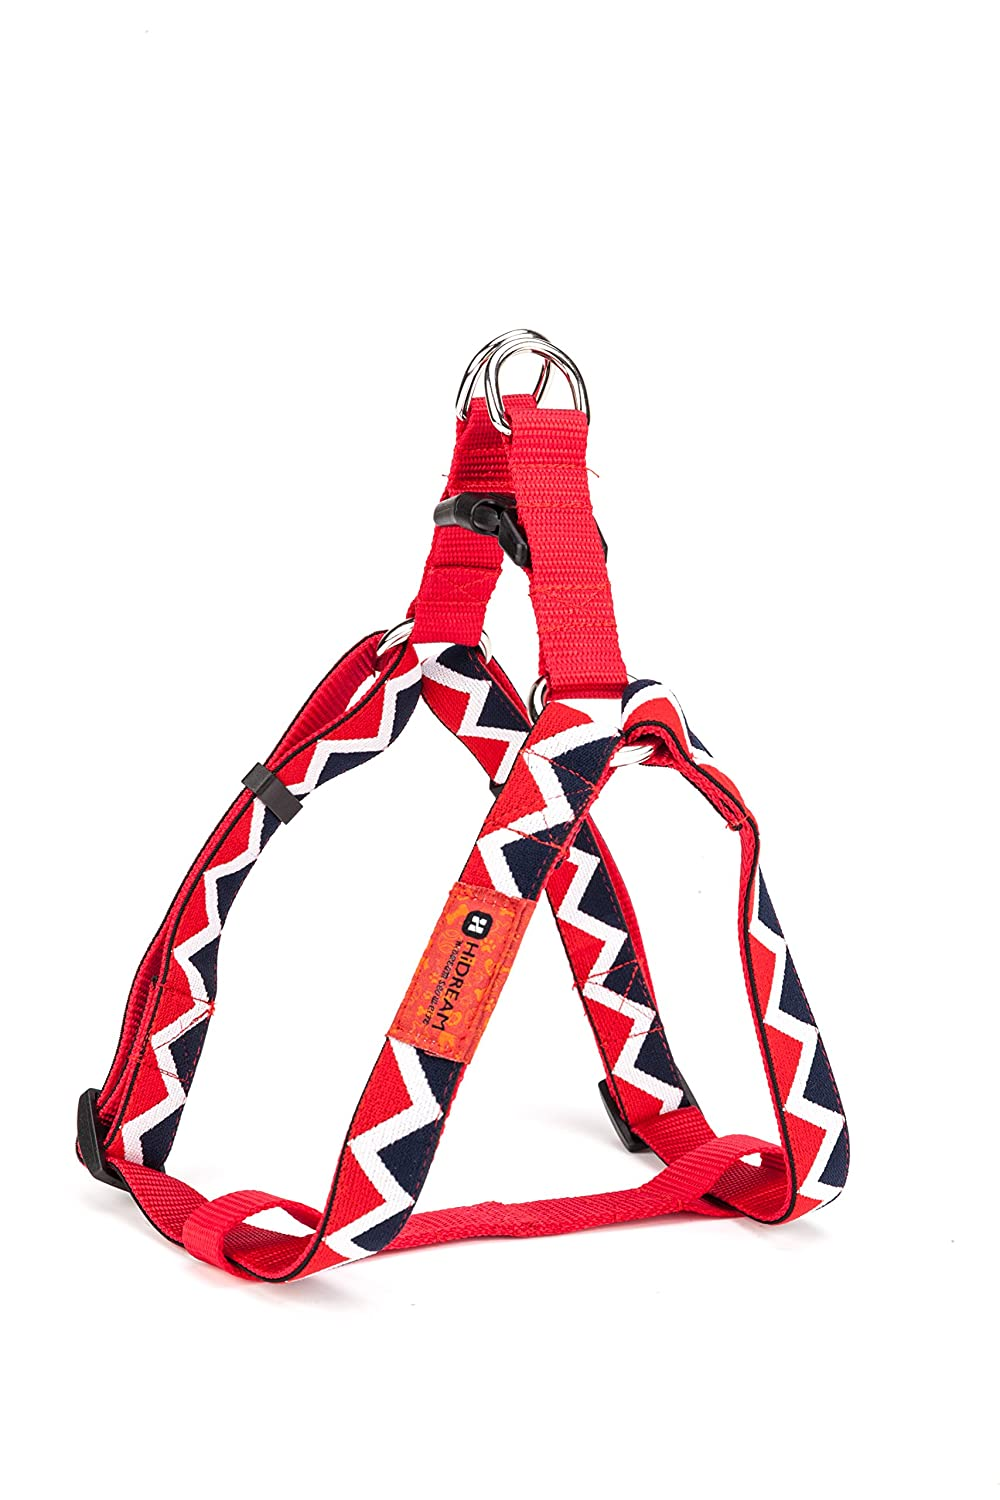 Red S Red S Rainbow Dog Harness (S, Red) Size 13.5 -21.7  Adjustable with 0.6  Width Dog Vest Harness for Small Dogs Like Poodle Teddy Papillon,No Pull Dog Safety Vest Harness Easy for Training and Walking